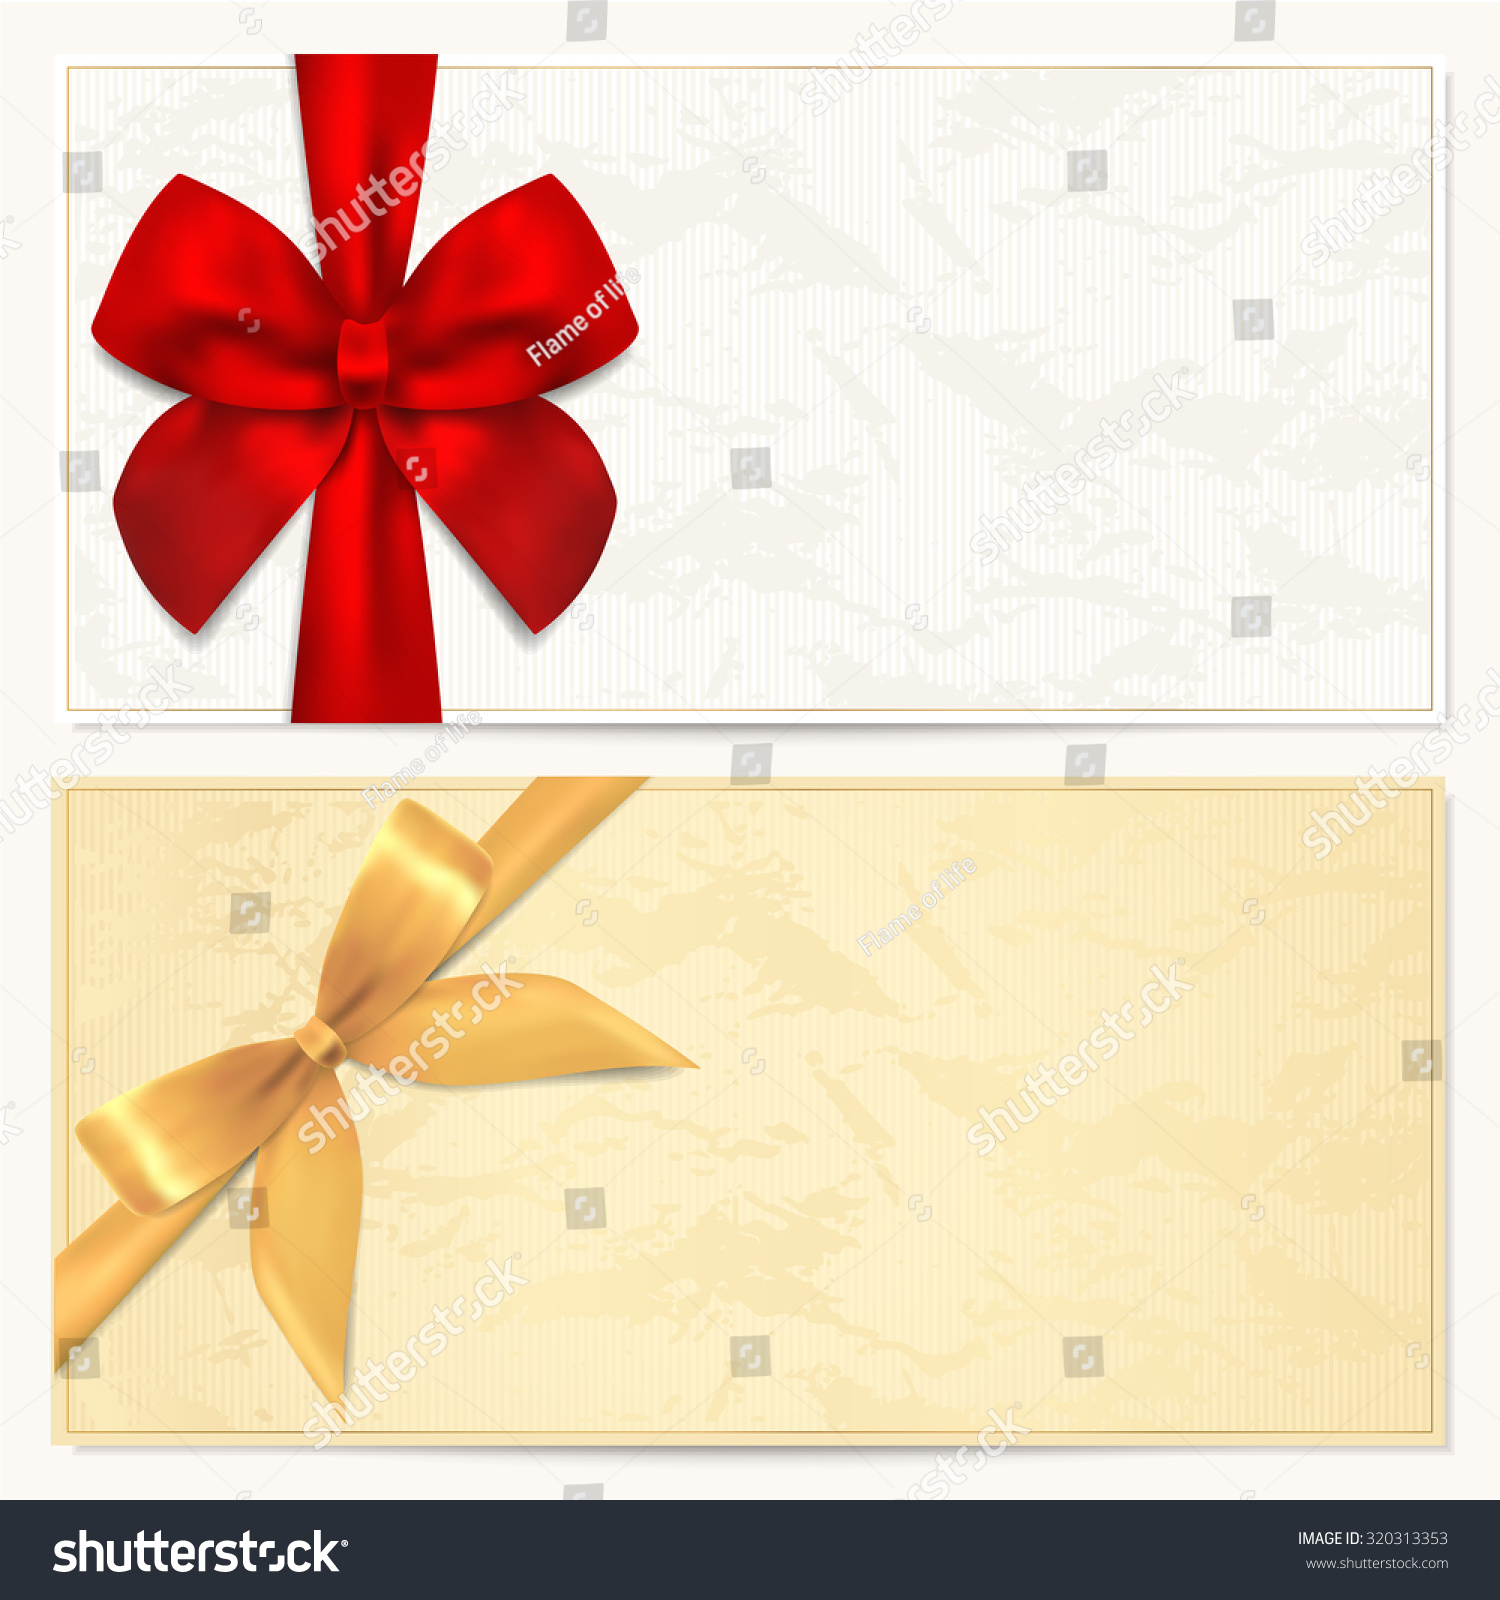 Voucher Gift Certificate Coupon Gift Money Illustration – Gift Certificate Blank Template